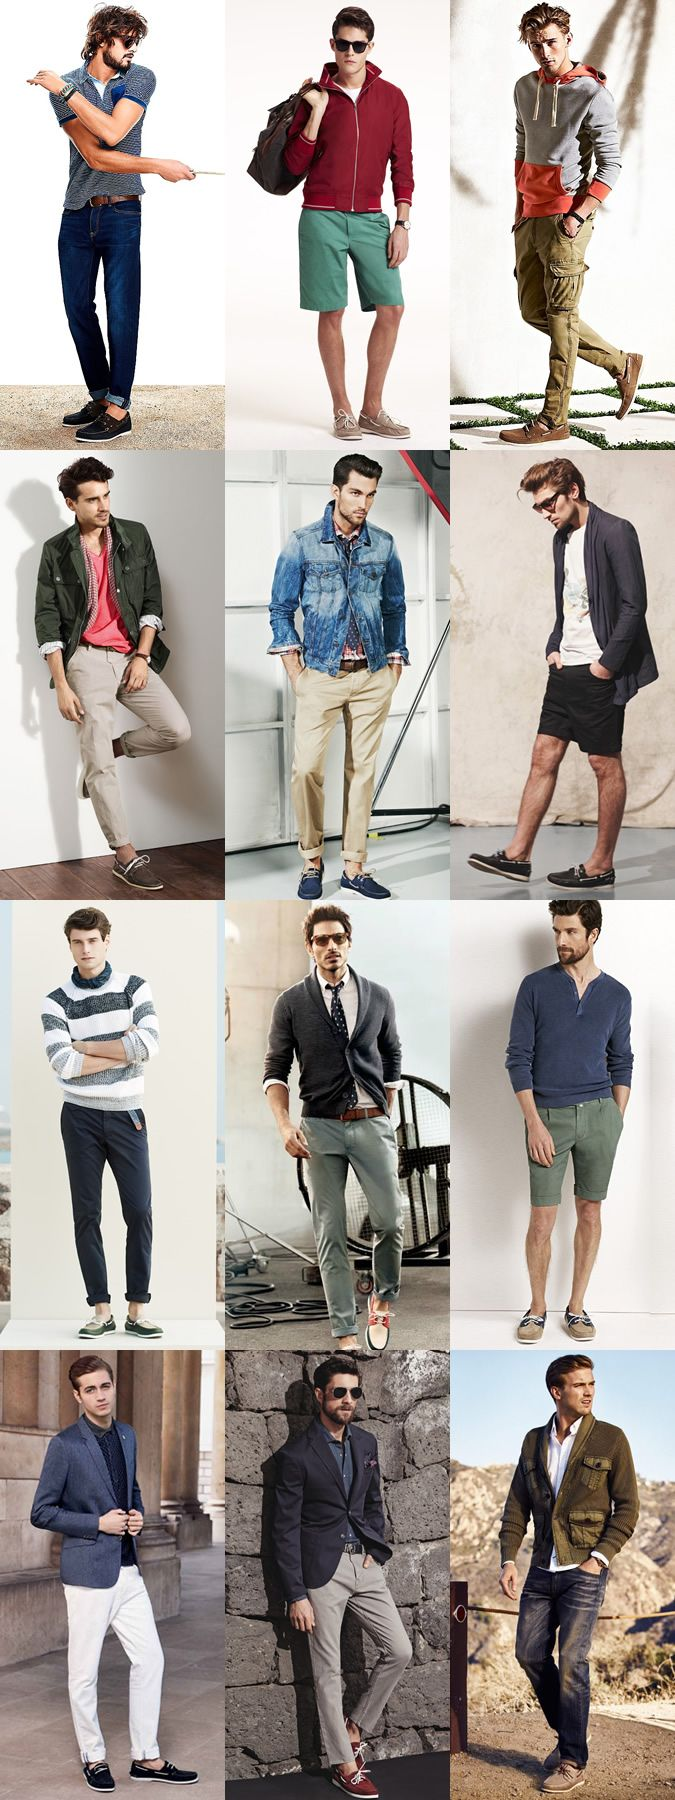 Men's Canvas/Suede Boat Shoes Outfit Inspiration Lookbook